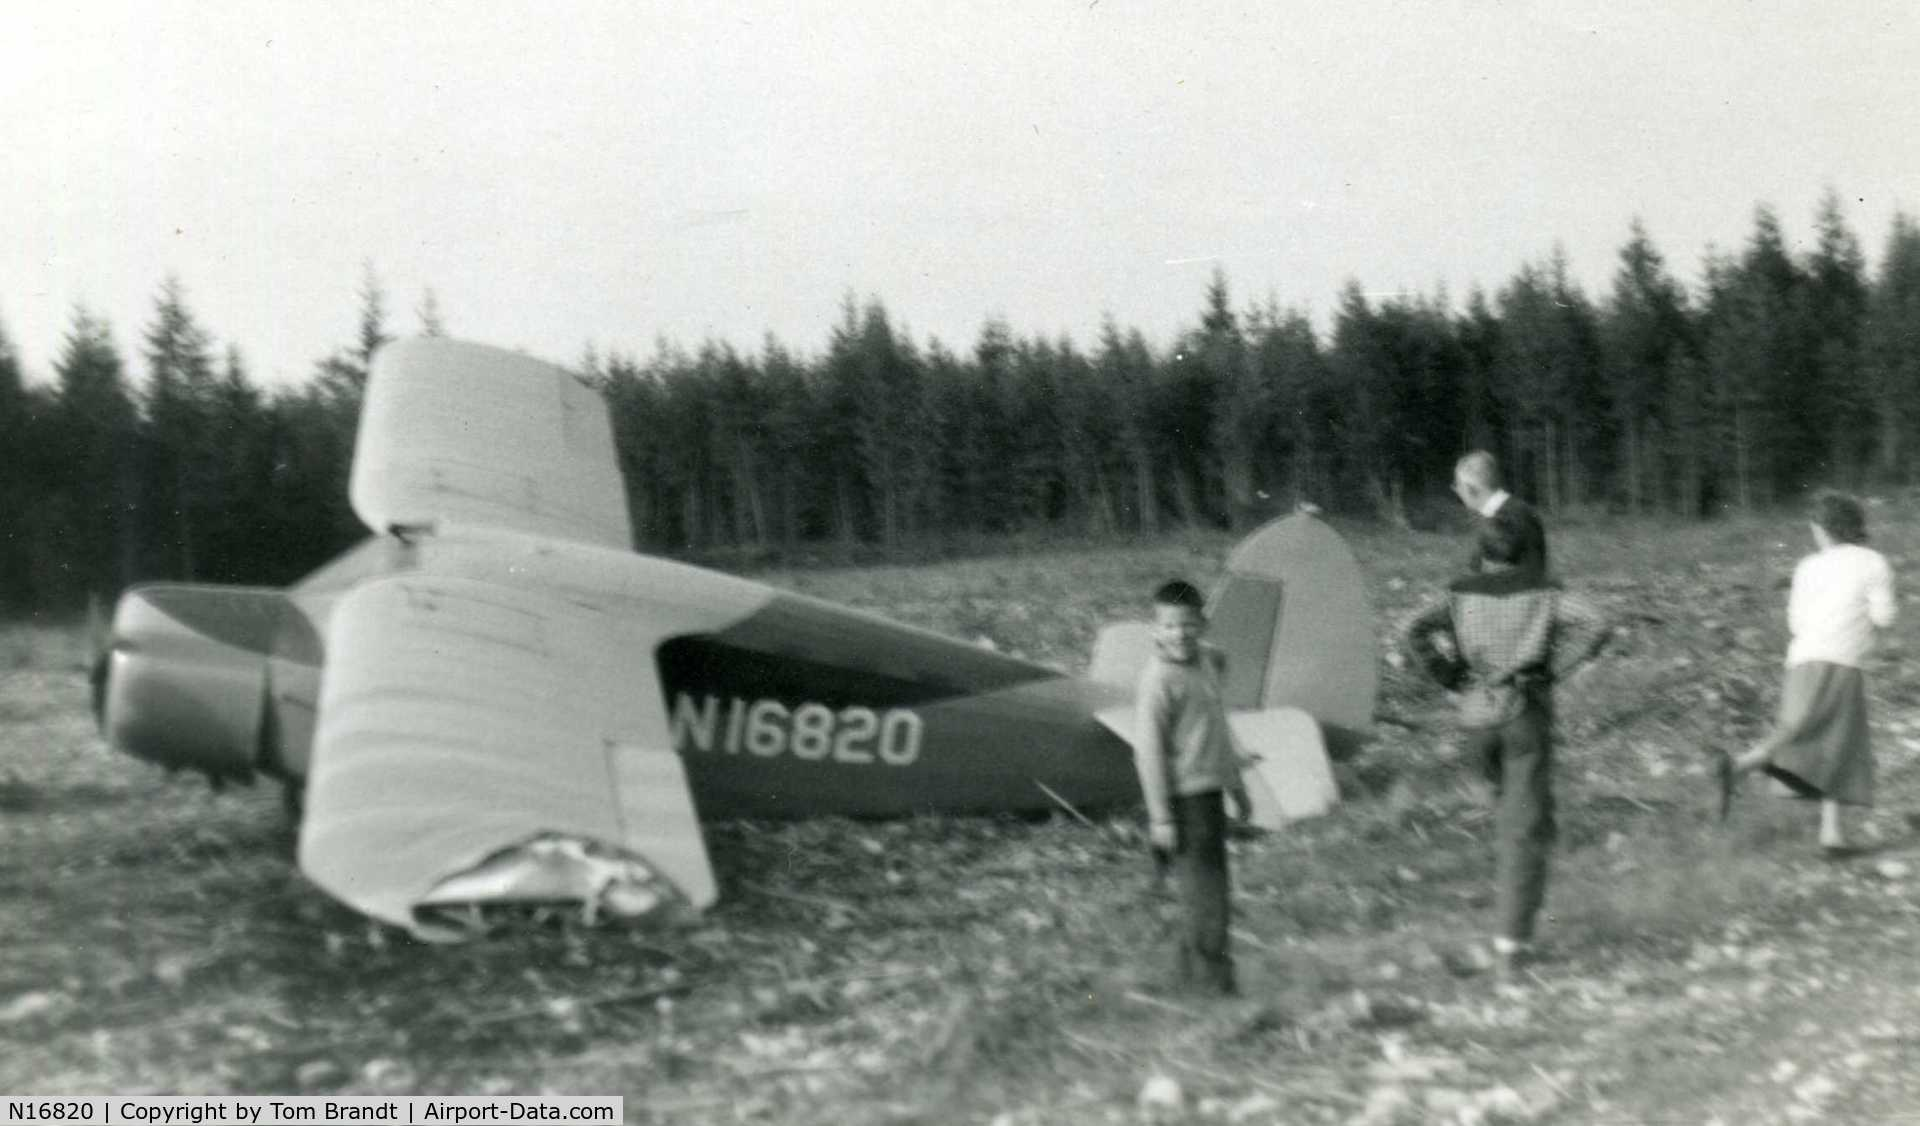 N16820, 1936 Fairchild 24 C8E C/N 2830, N16820 after a crash.